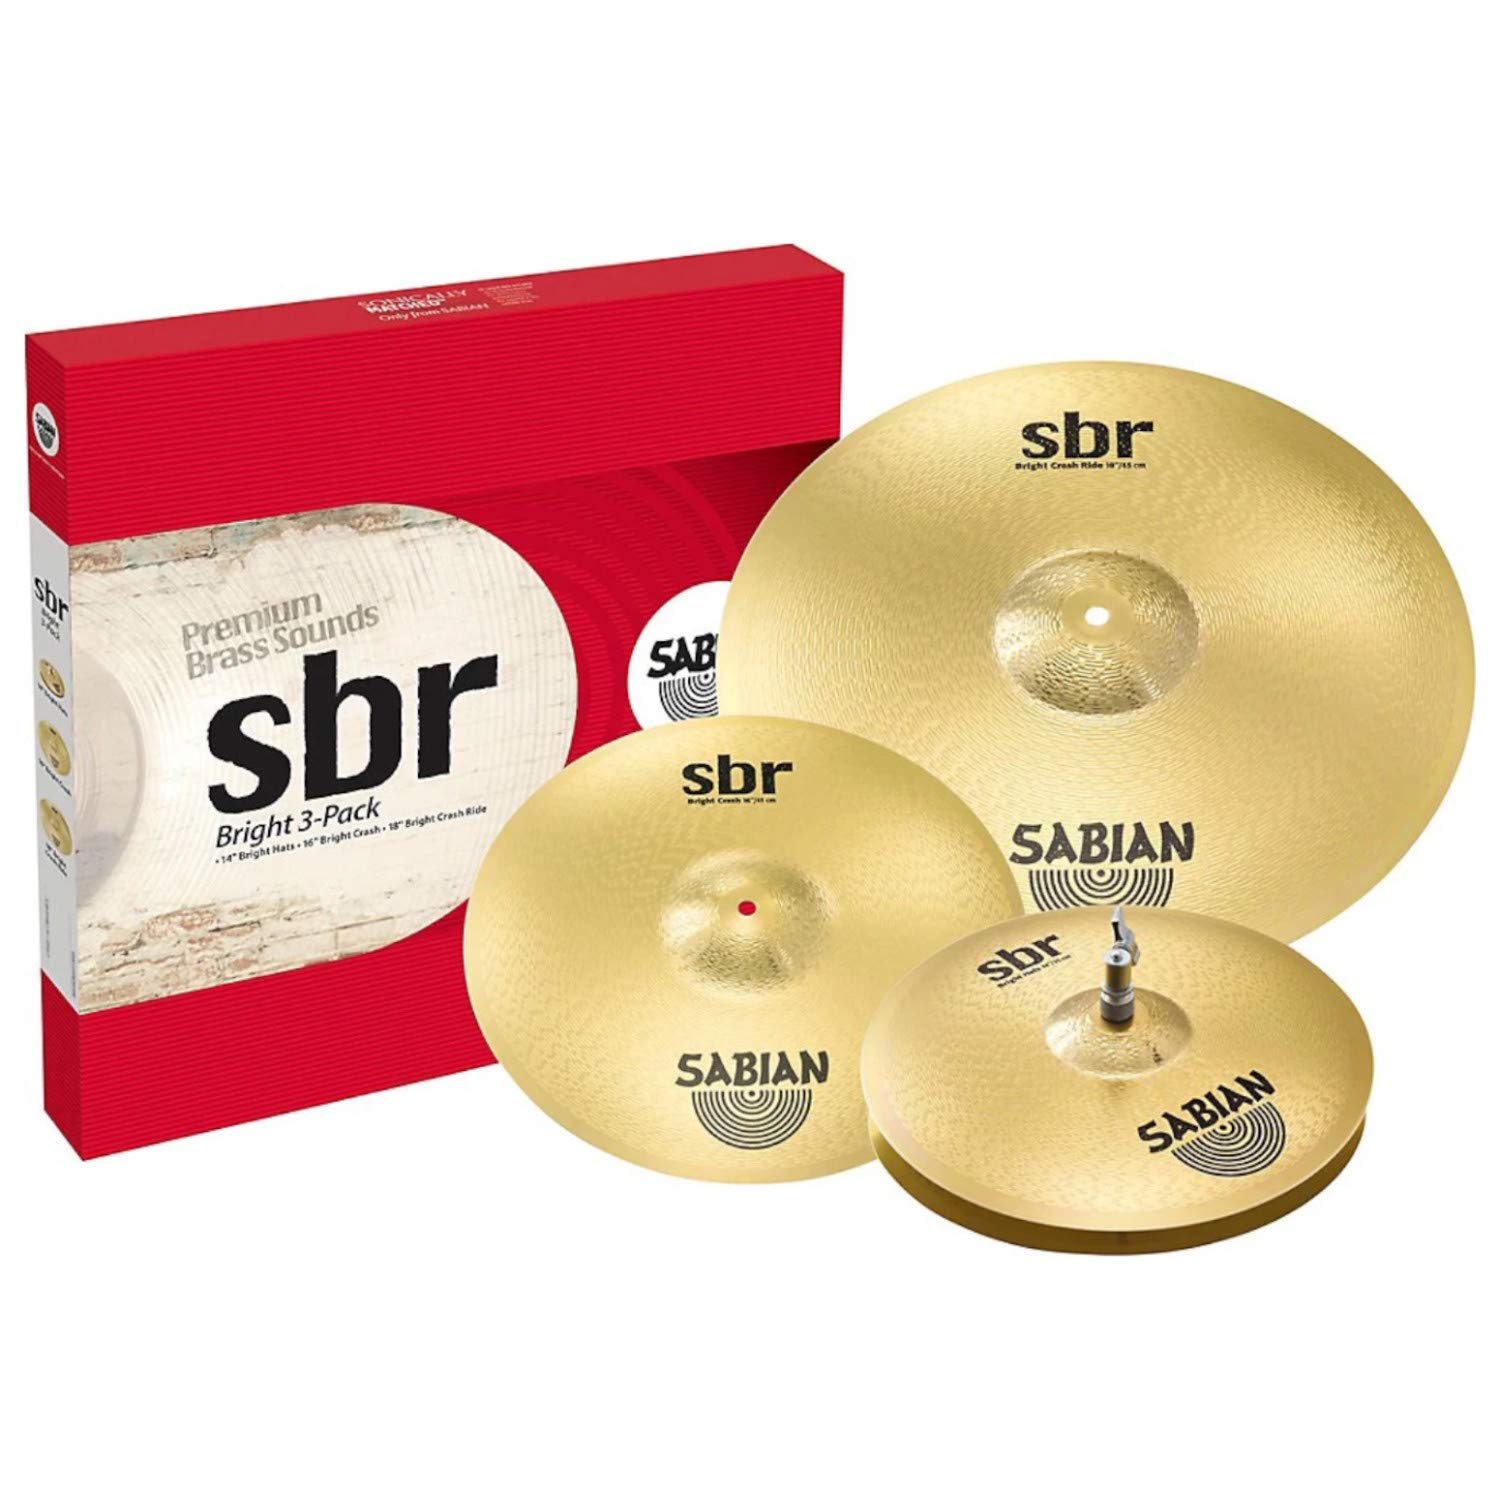 Sabian Cymbal Set SBR Bright 3-Pack 14'' Bright Hats, 16'' Bright Crash, 18'' Bright Crash/Ride SBR5004BR2 by Sabian